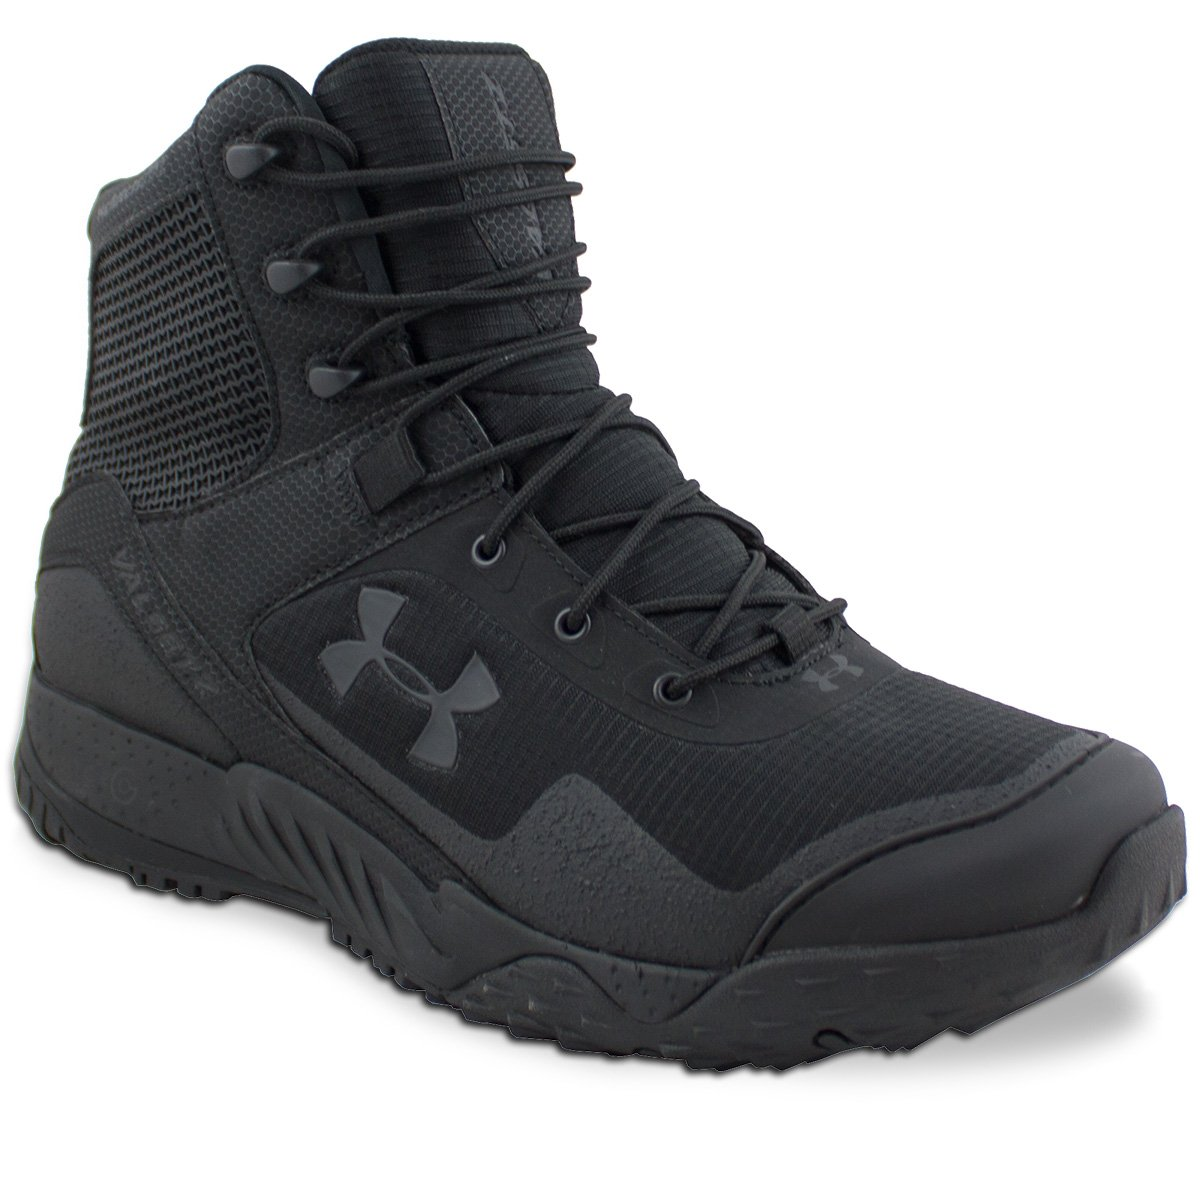 Under Armour Men's Valsetz RTS Military and Tactical Boot 001/Black, 9